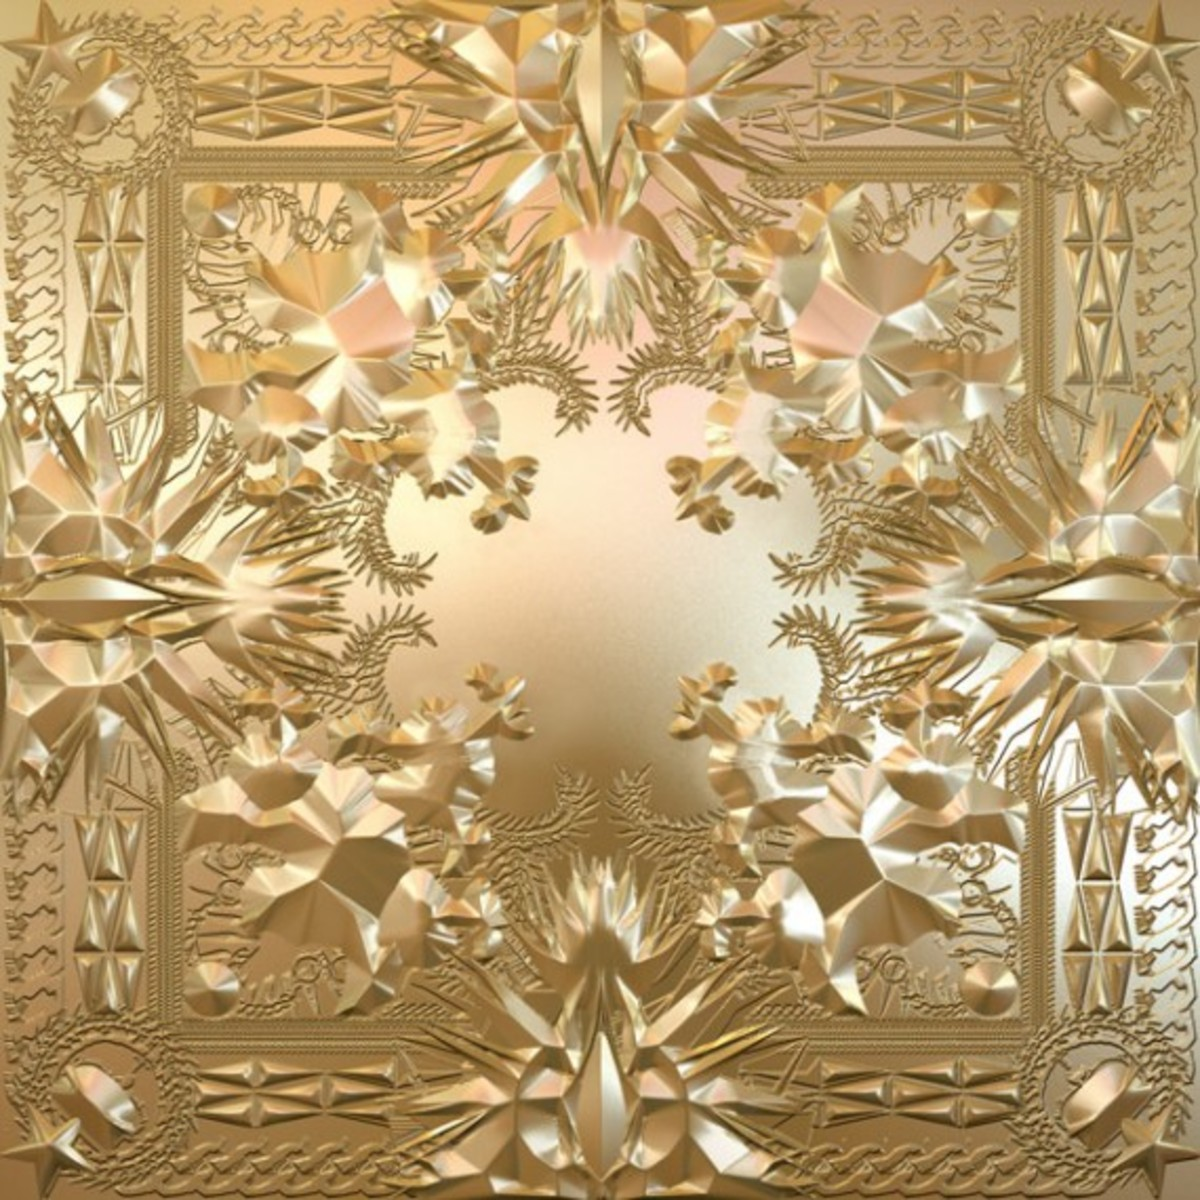 Watch-The-Throne-album-cover